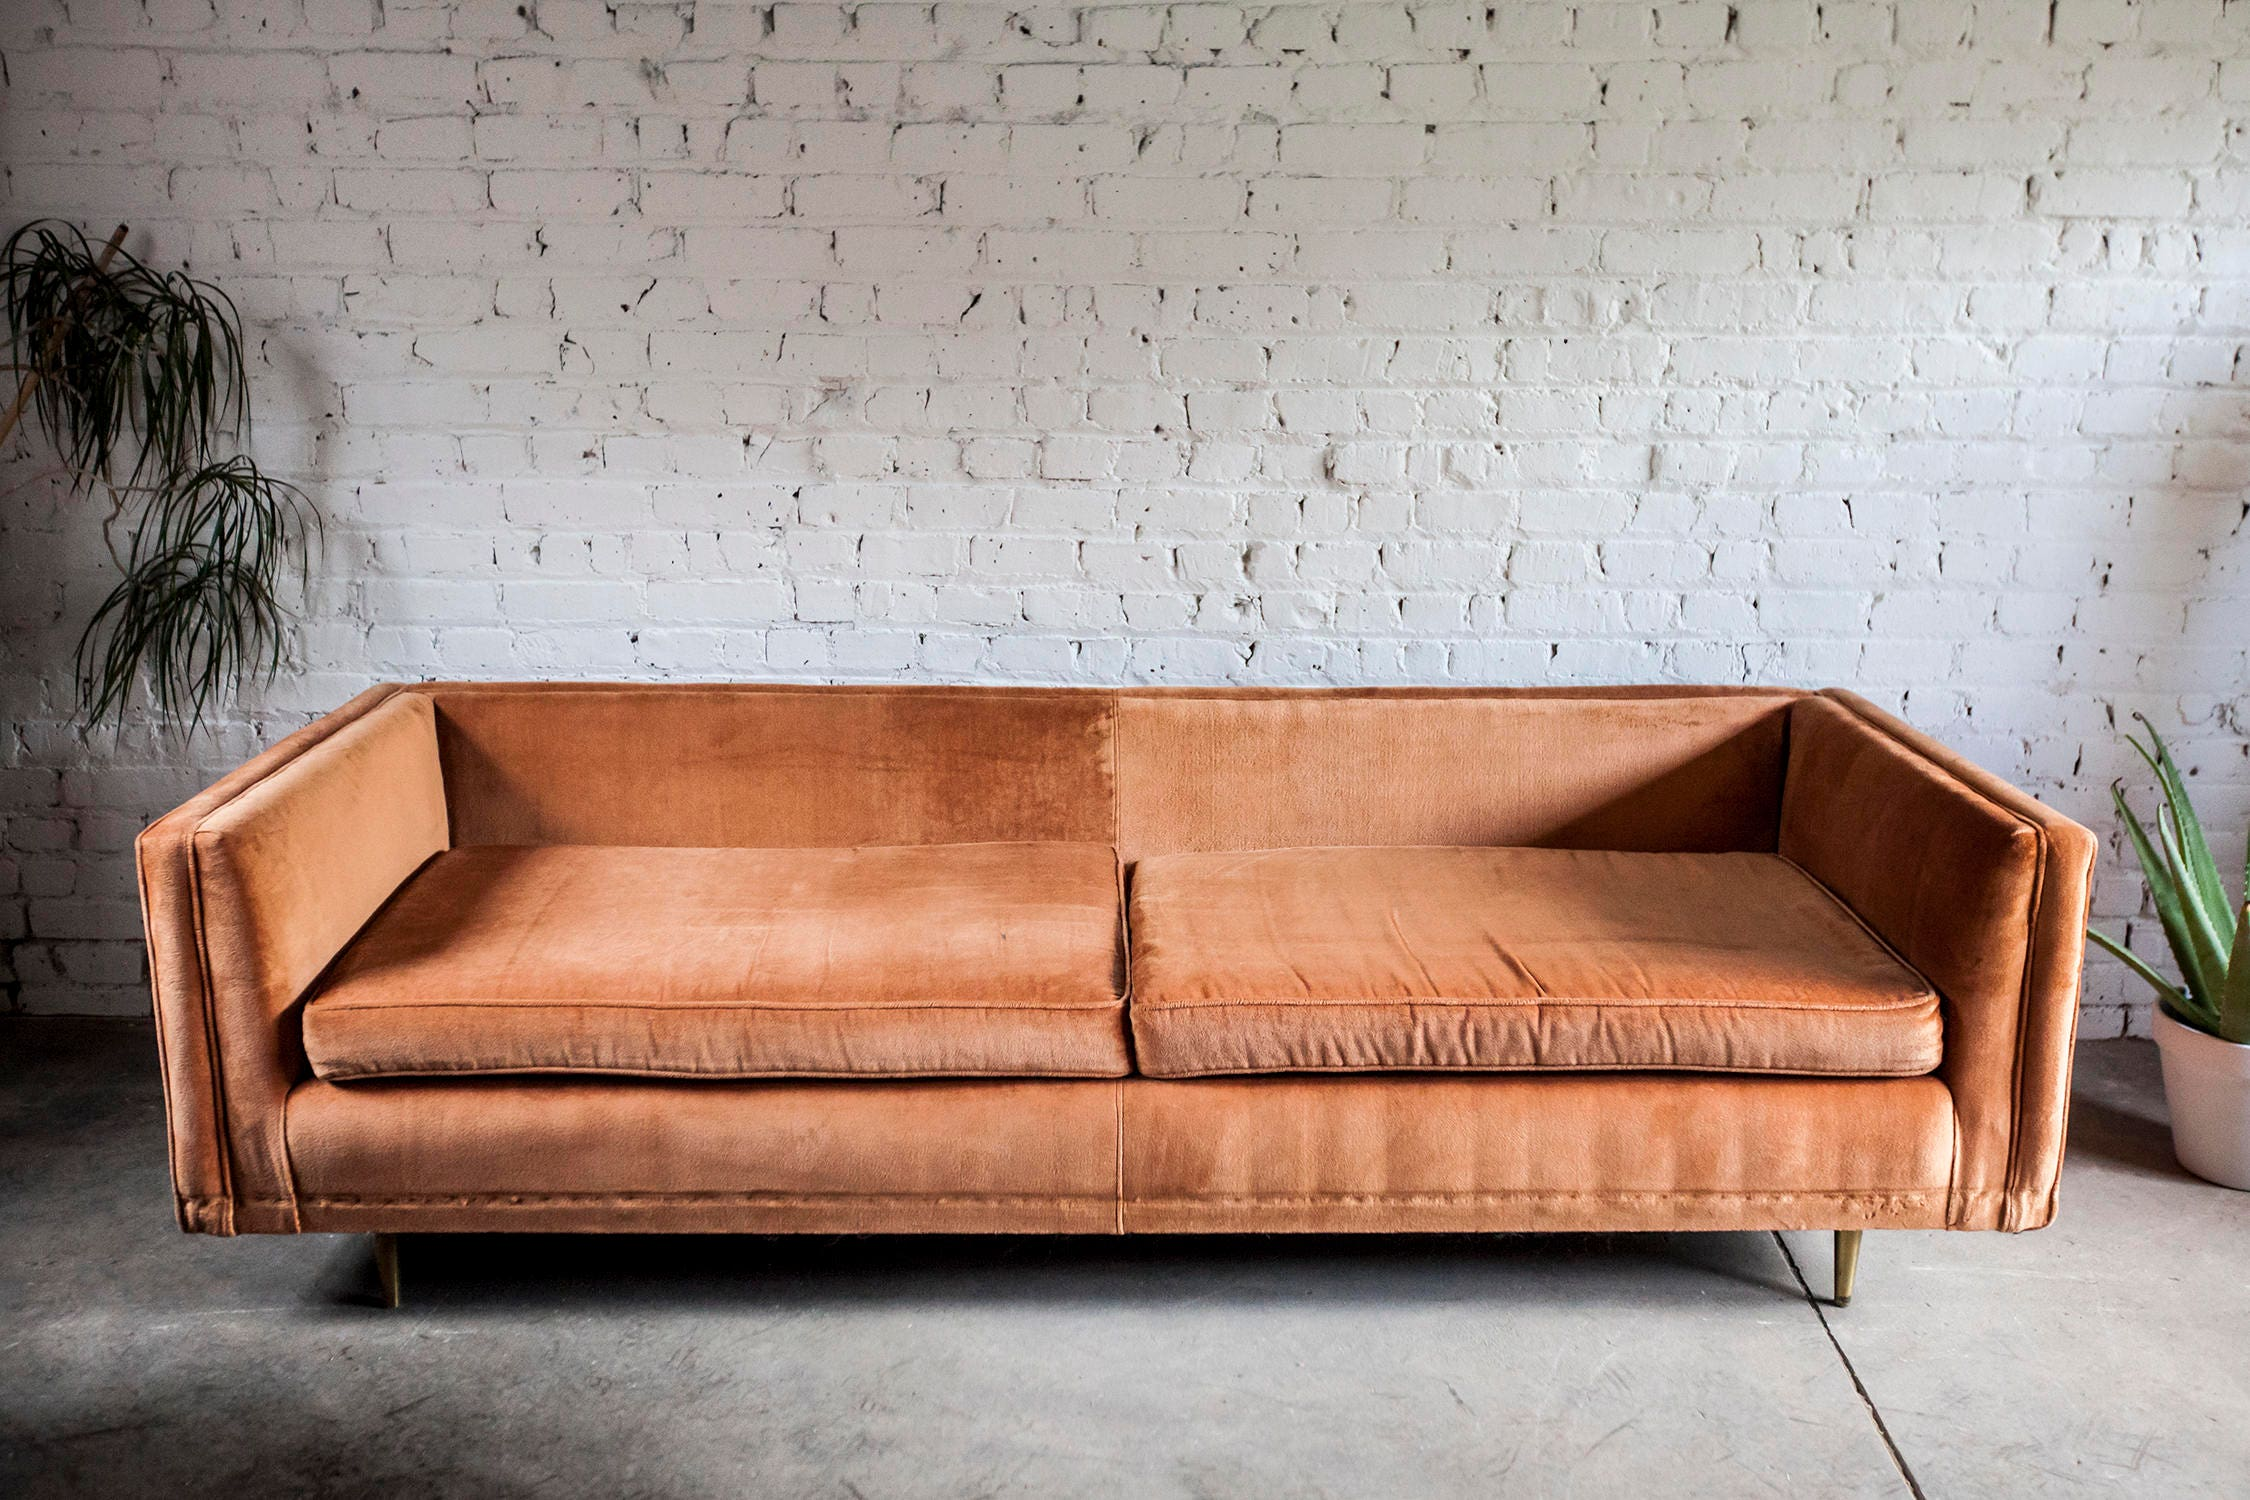 Vintage Mid Century Coral Orange Sofa Peg Leg Low Profile MCM